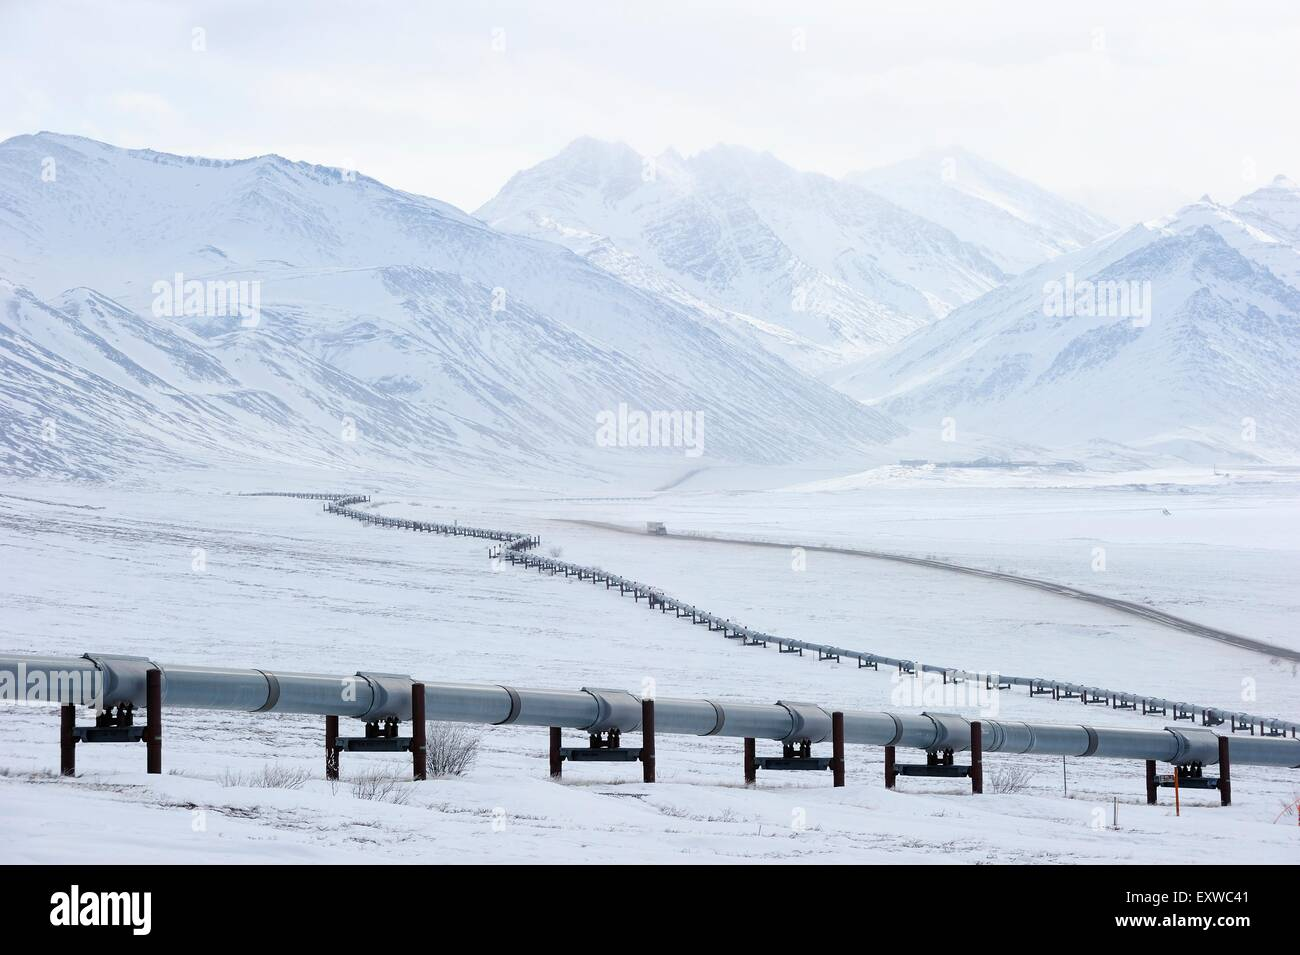 Oil pipeline from Prudhoe Bay to Valdez in the Arctic winter along the Dalton Highway, Haul Road, Alaska, USA - Stock Image